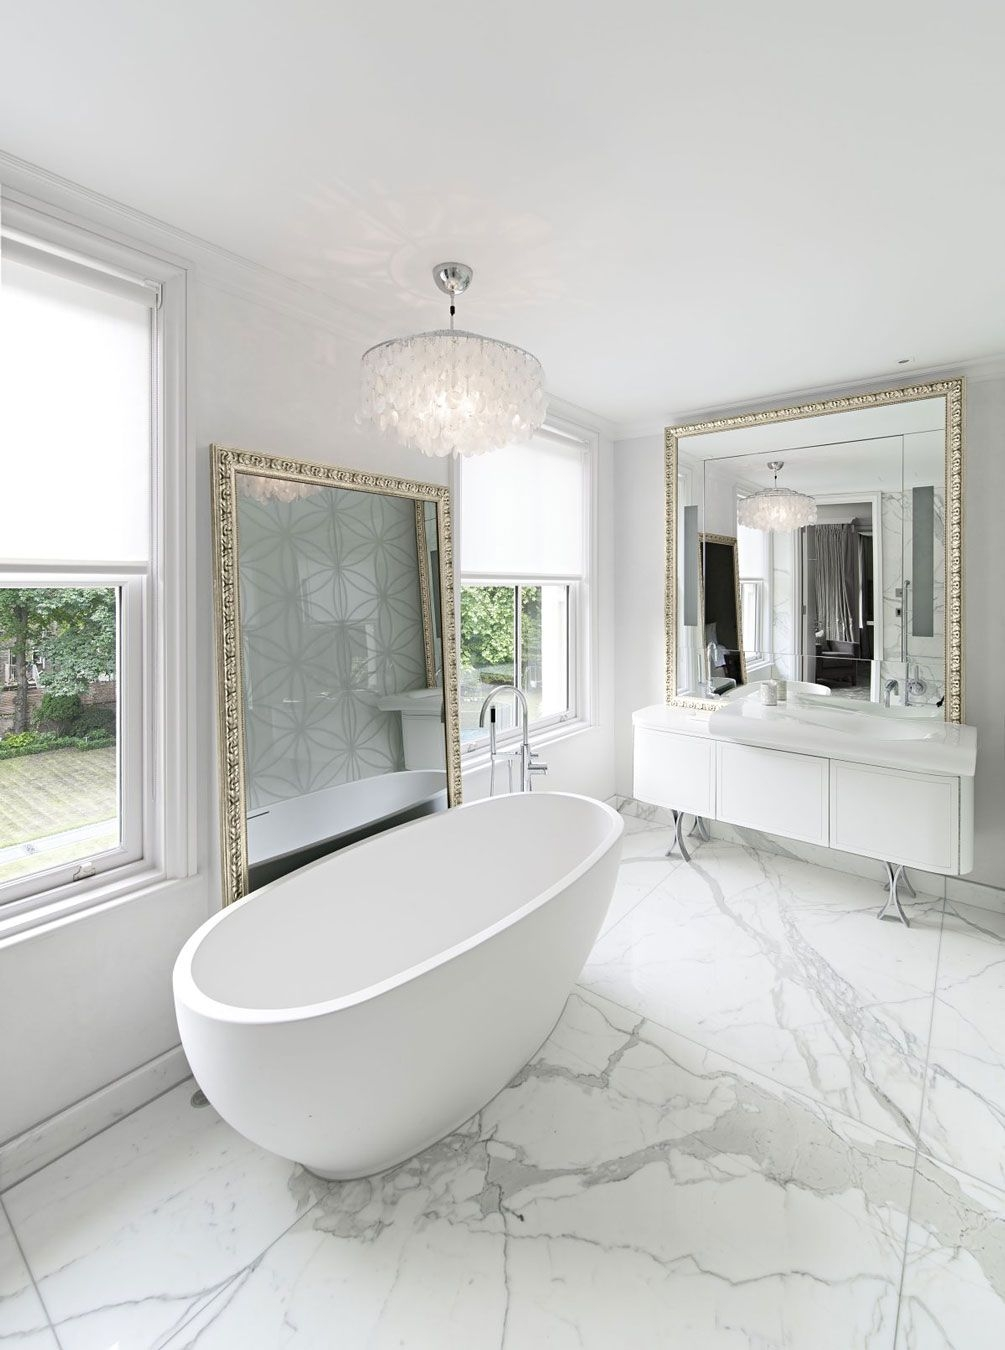 7 unique ways to get luxury hotel bathroom at home interior design